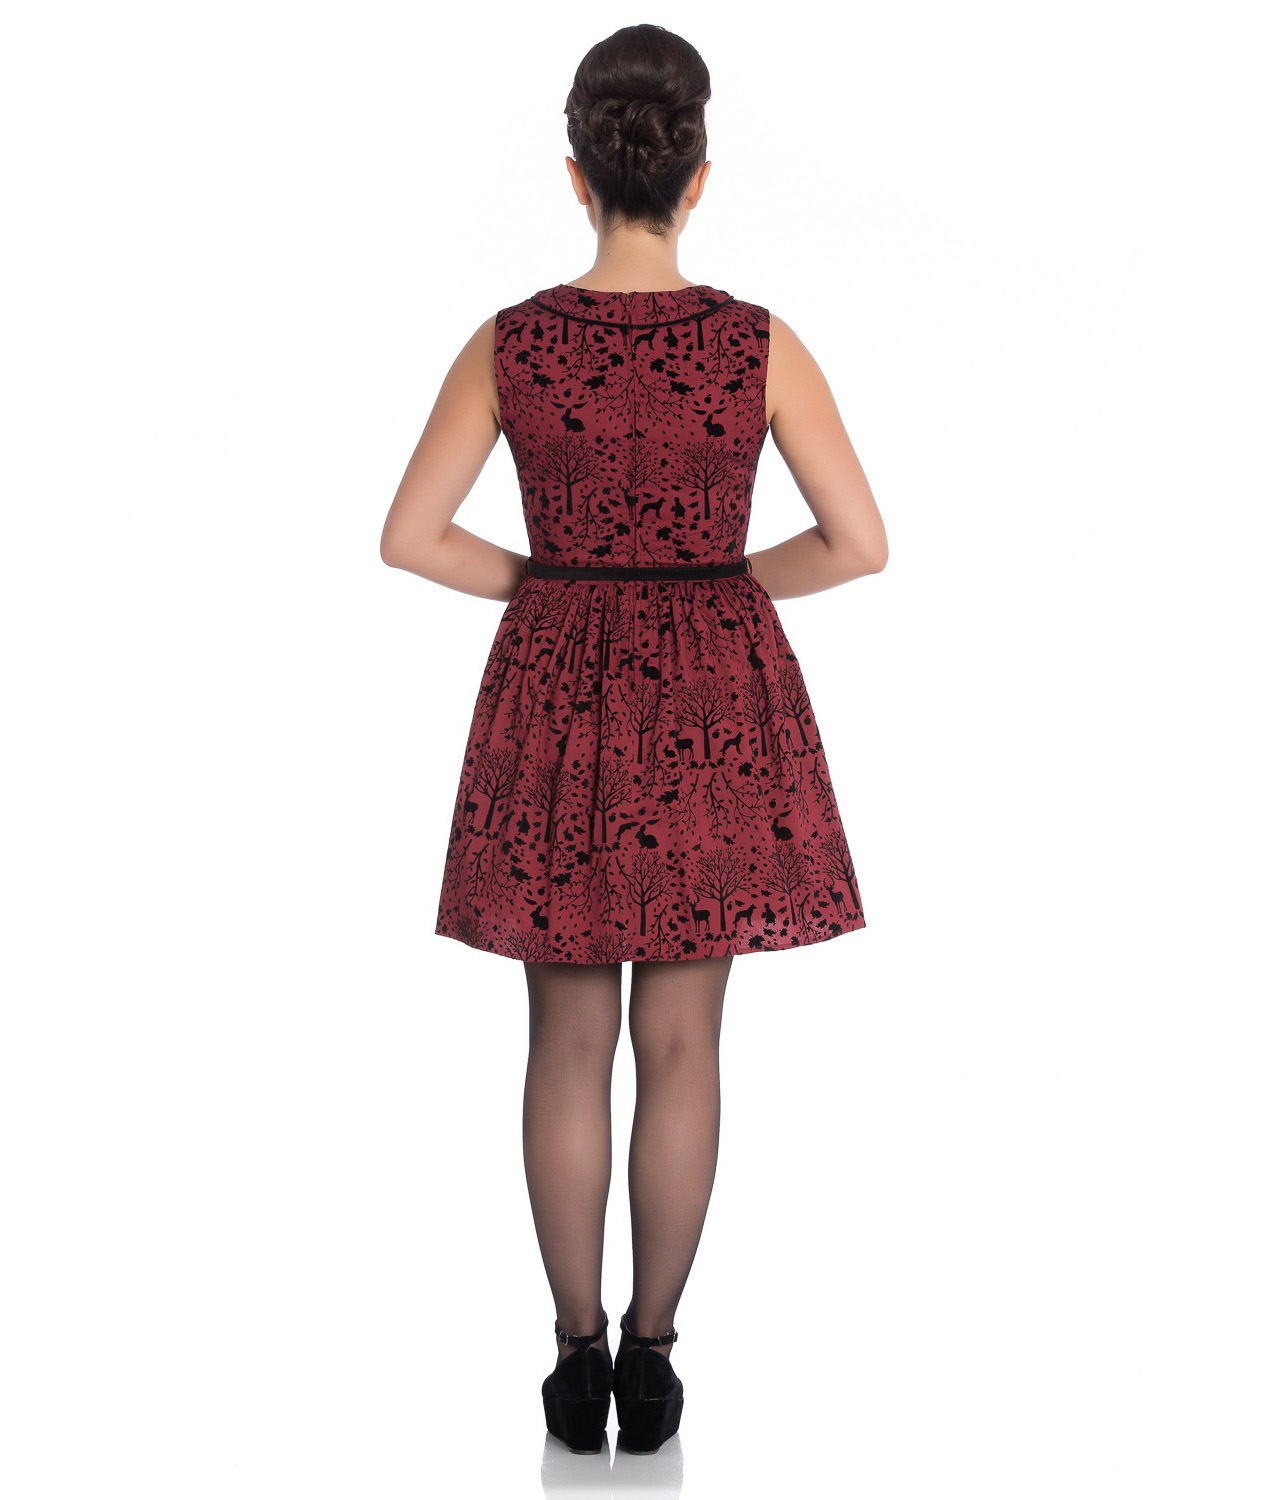 Hell-Bunny-50s-Mini-Skater-Dress-Woodland-Trees-SHERWOOD-Black-Red-All-Sizes thumbnail 13